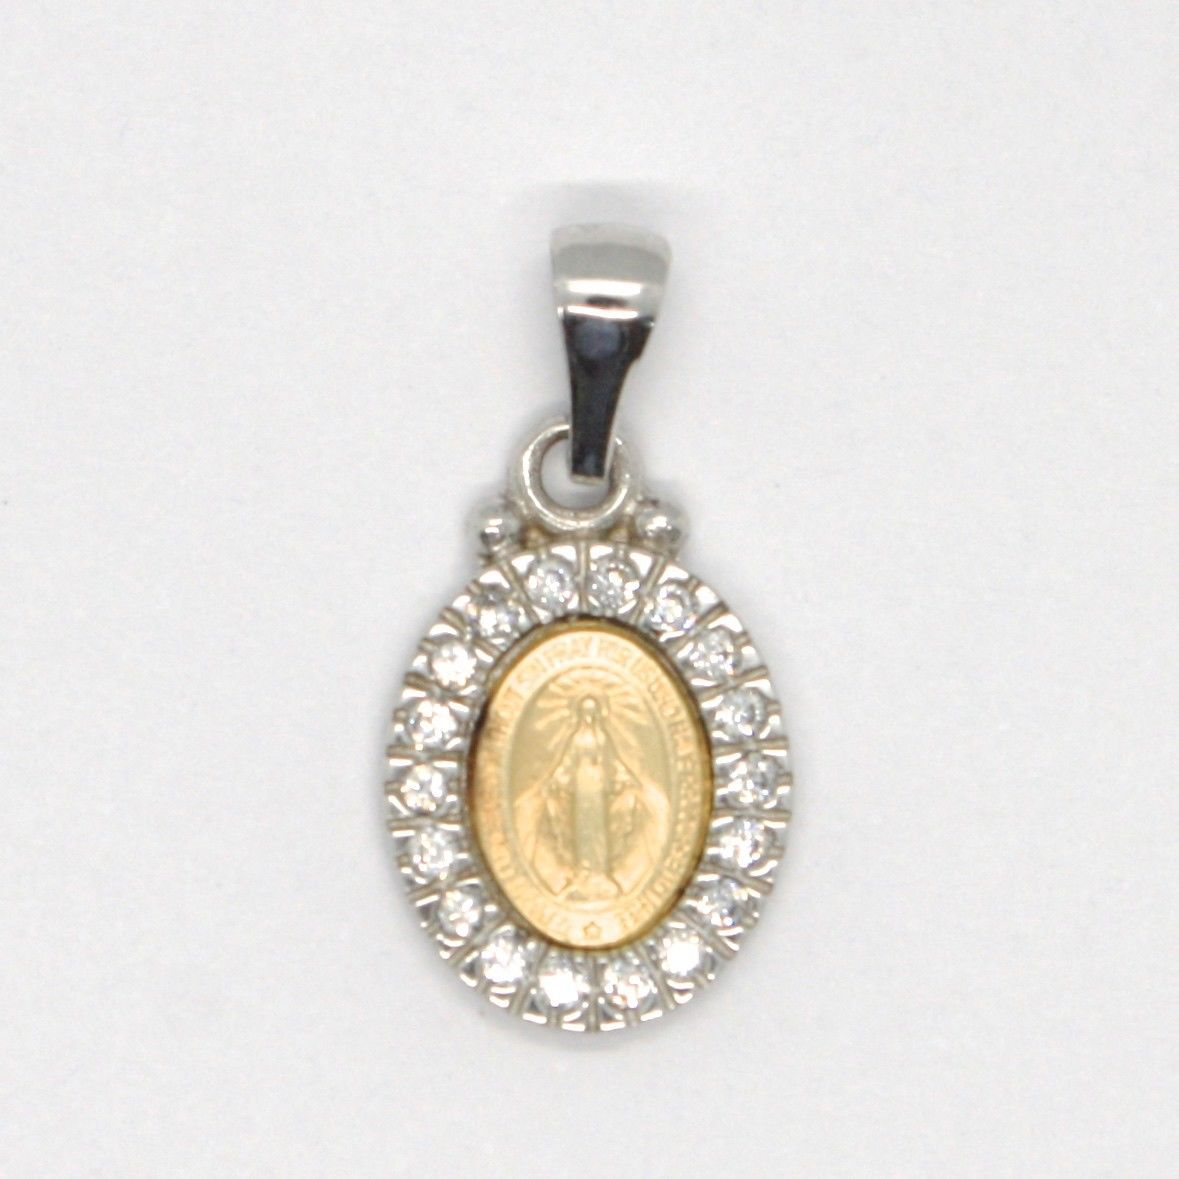 18K YELLOW WHITE GOLD ZIRCONIA MINI MIRACULOUS MEDAL VIRGIN MARY MADONNA, ITALY